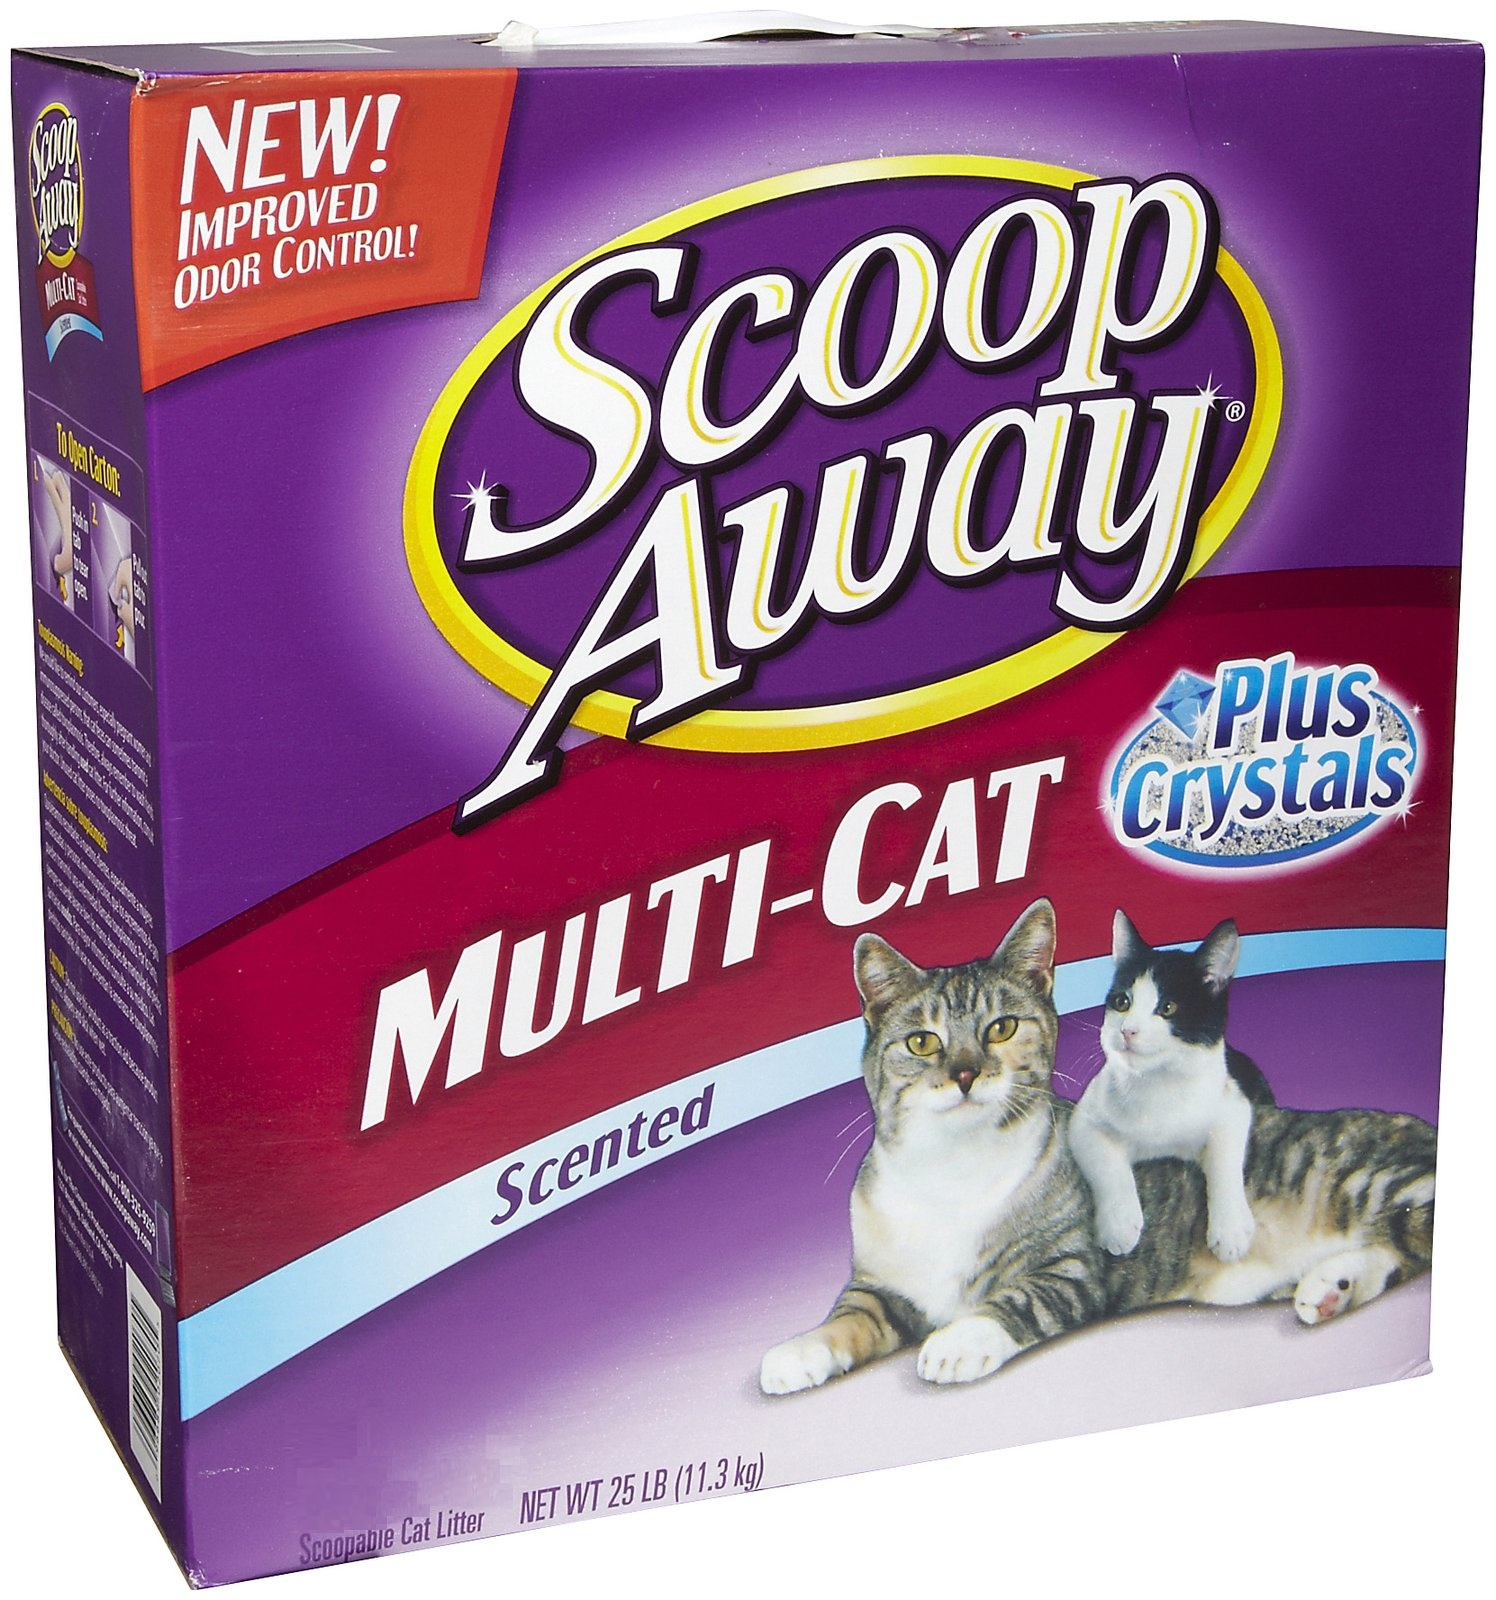 when cats spray does it smell